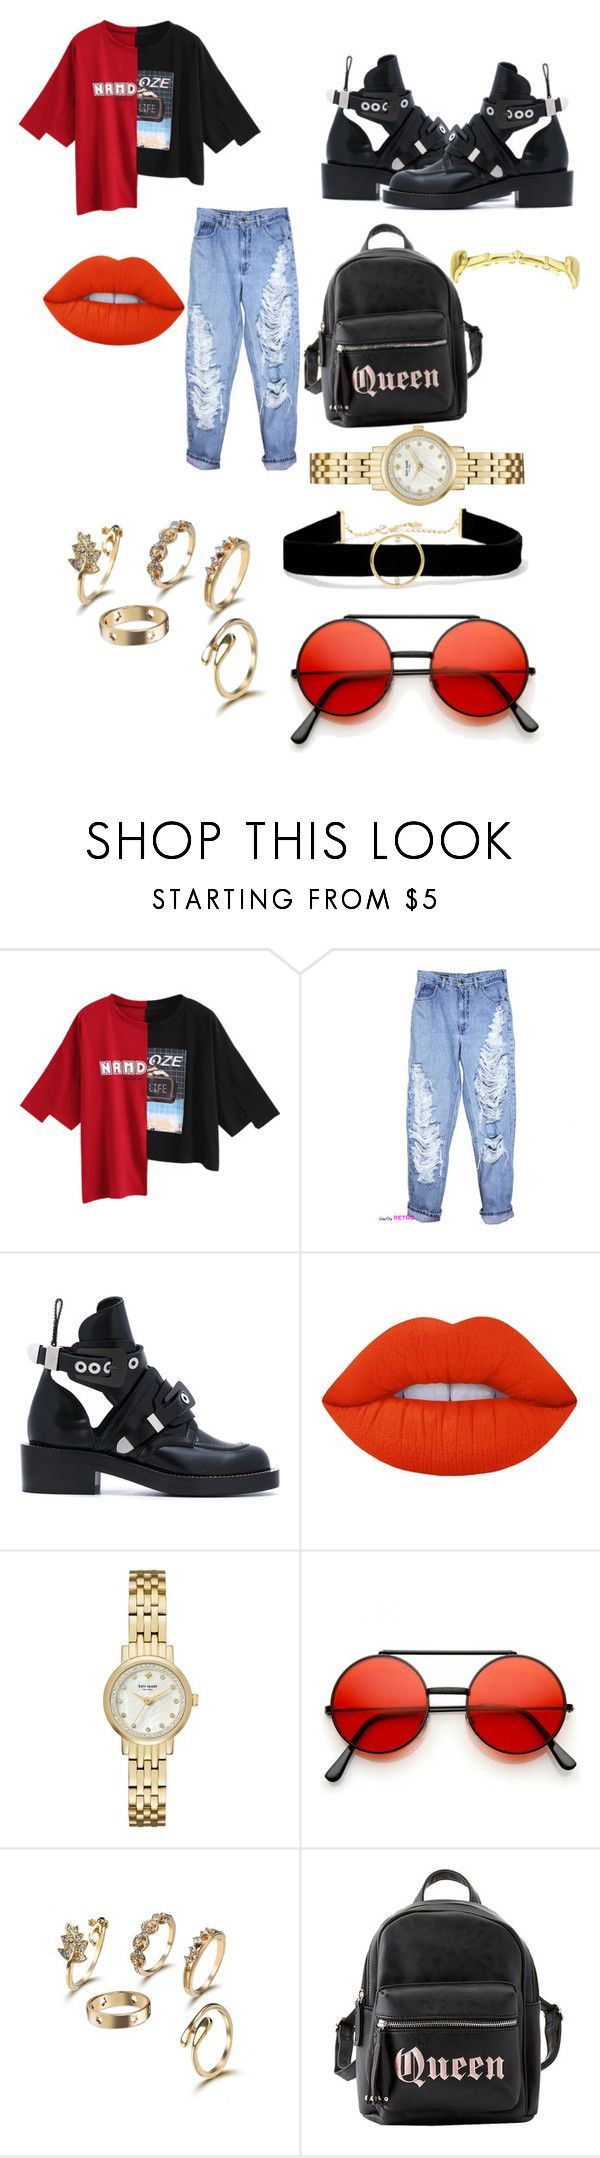 """""""A day out"""" by kaitlinnash ❤ liked on Polyvore featuring Balenciaga, Lime Crime, Kate Spade, Charlotte Russe and Anissa Kermiche"""